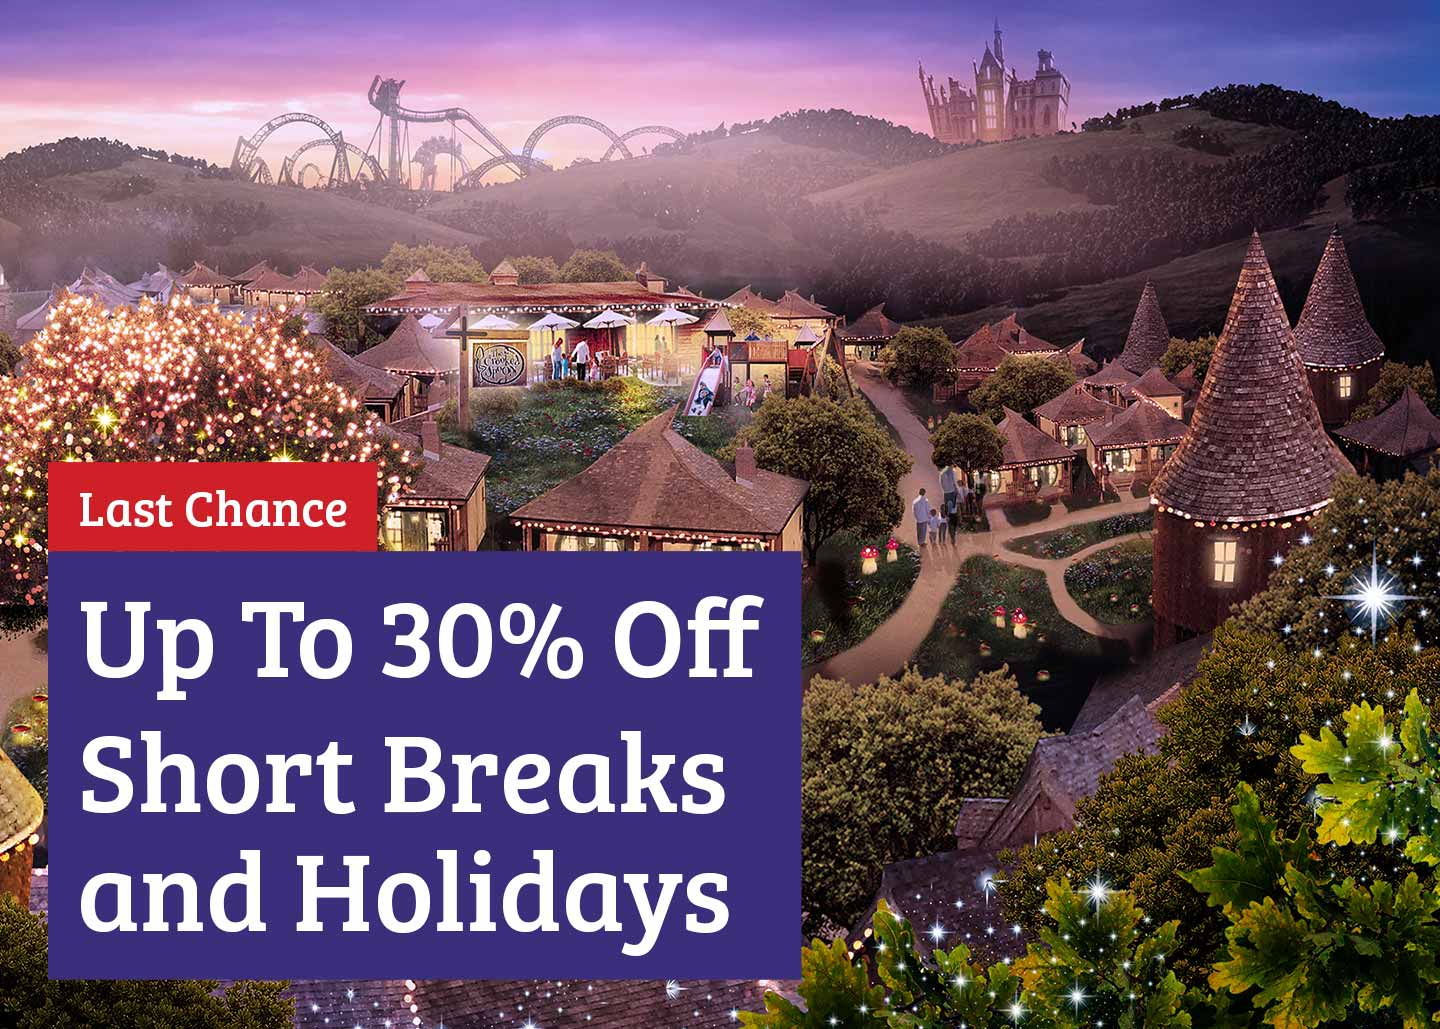 Save up to 30% offer with Alton Towers Holidays